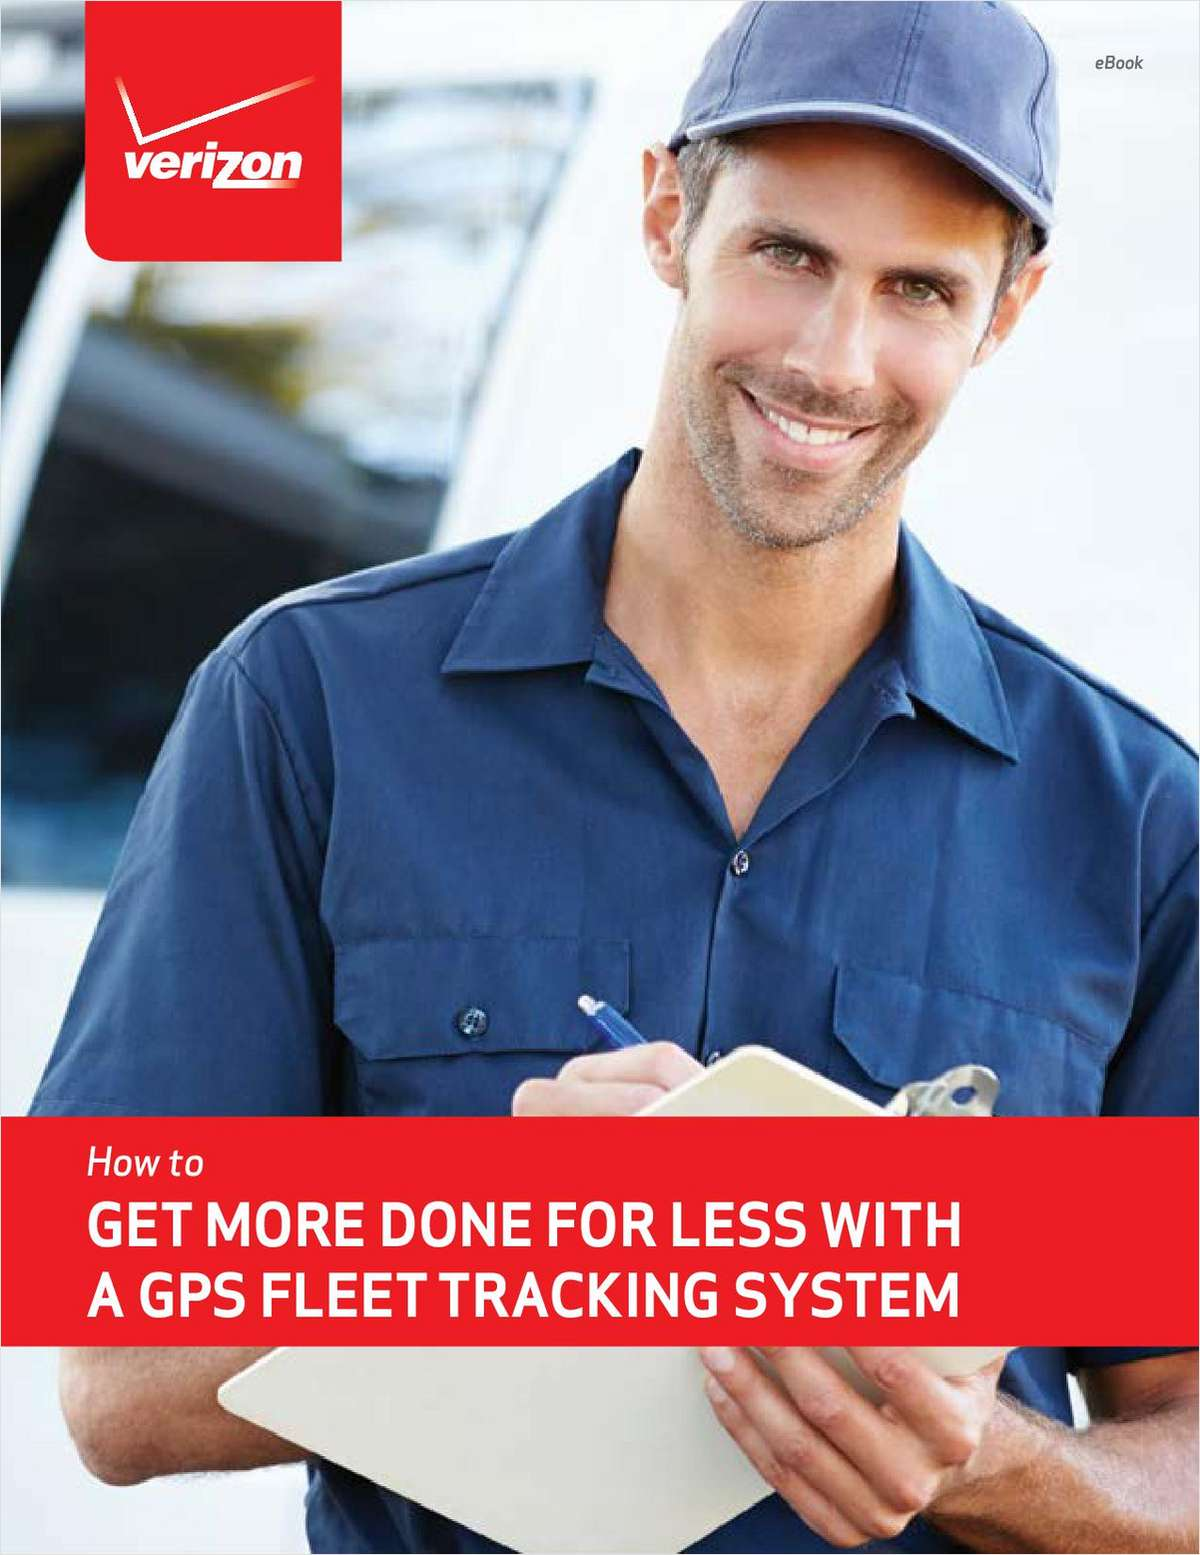 How to Get More Done for Less with a GPS Fleet Tracking System